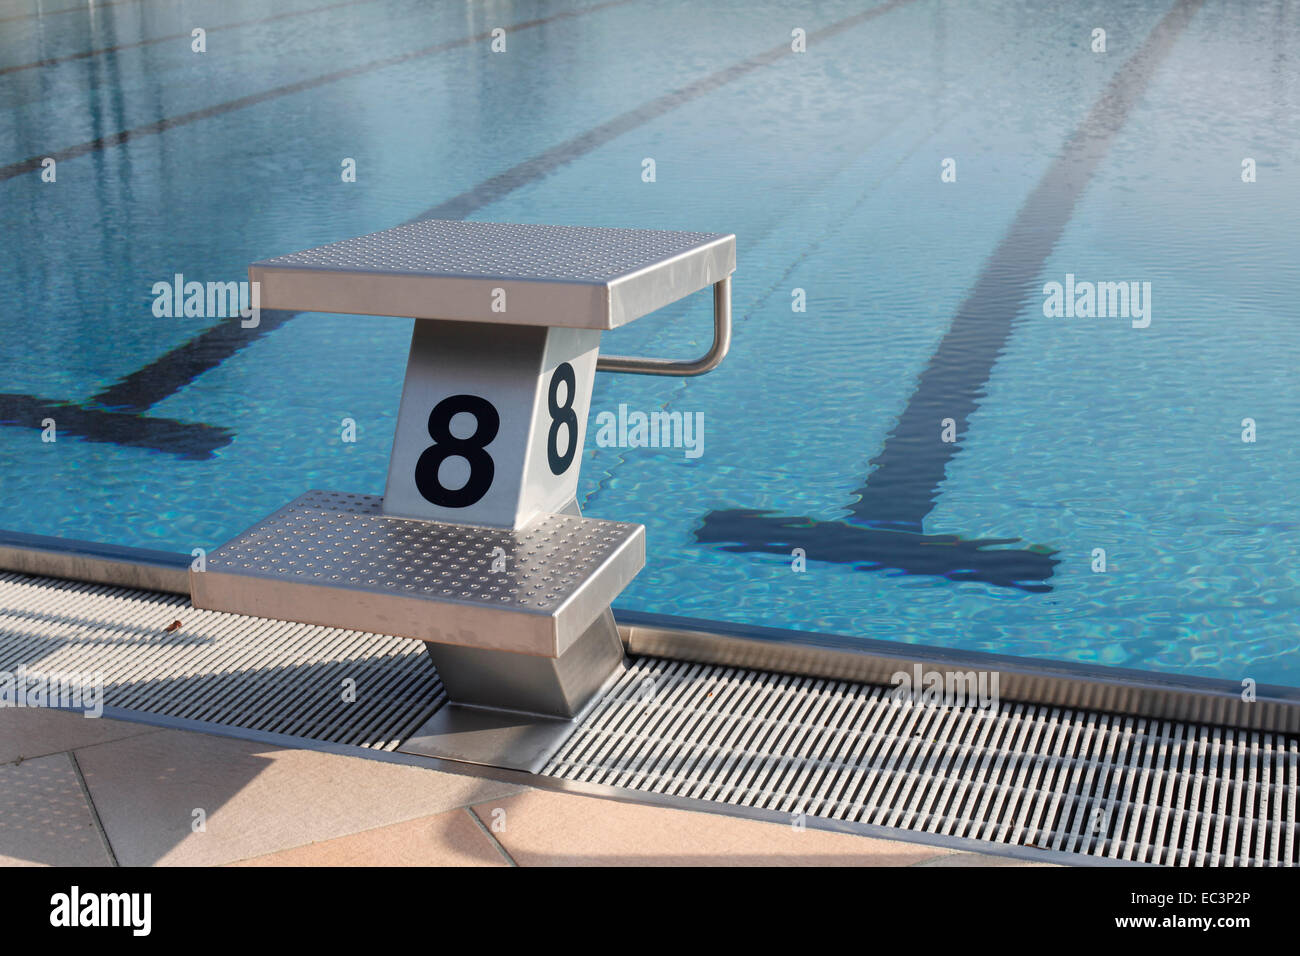 Indoor swimming pool diving board Stock Photo: 76300526 - Alamy